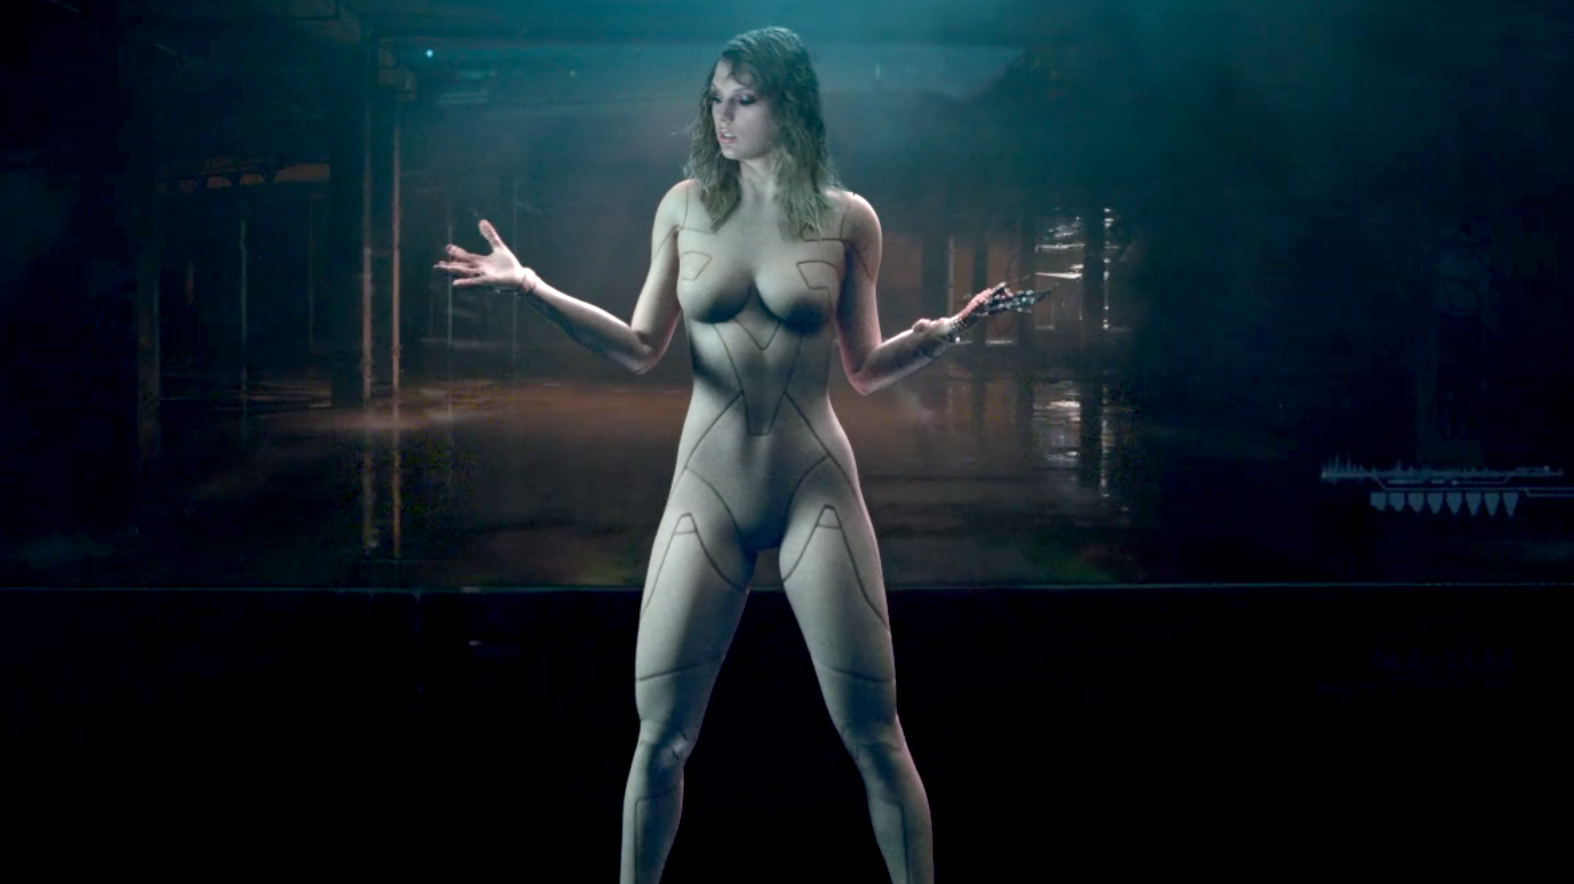 naked taylor swift video